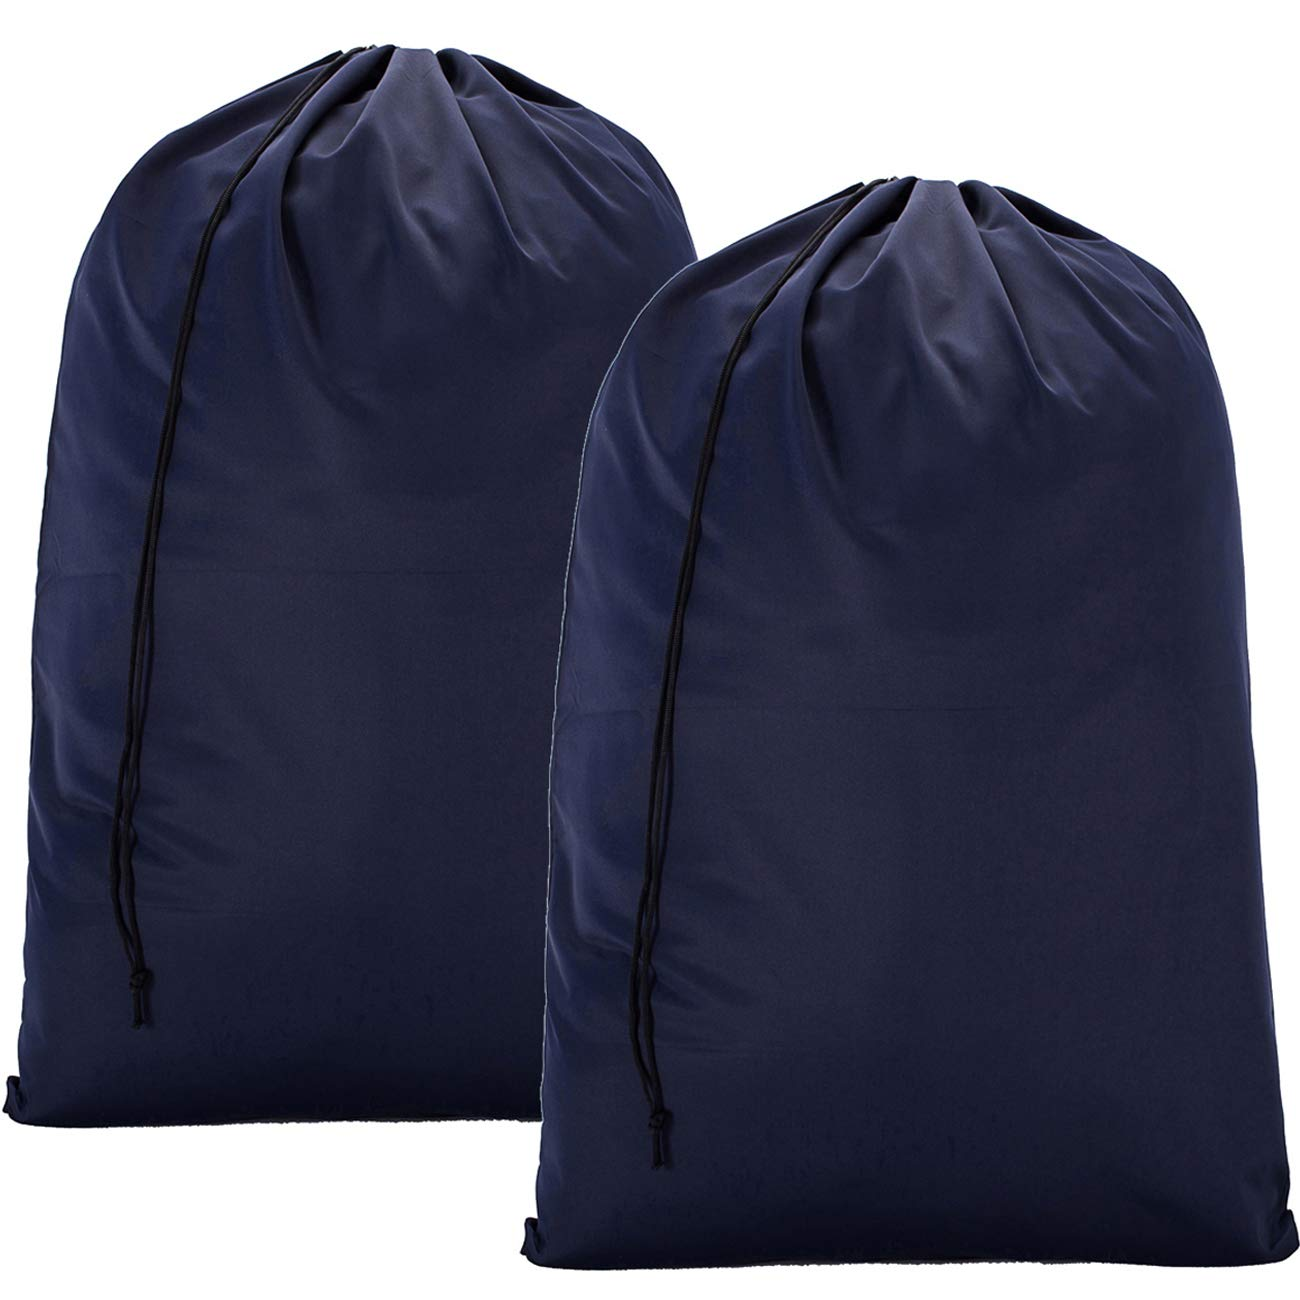 BGTREND 2 Pack Extra Large Travel Laundry Bag [28''×40''] Machine Washable Sturdy Rip-Stop Material with Drawstring Closure, Blue